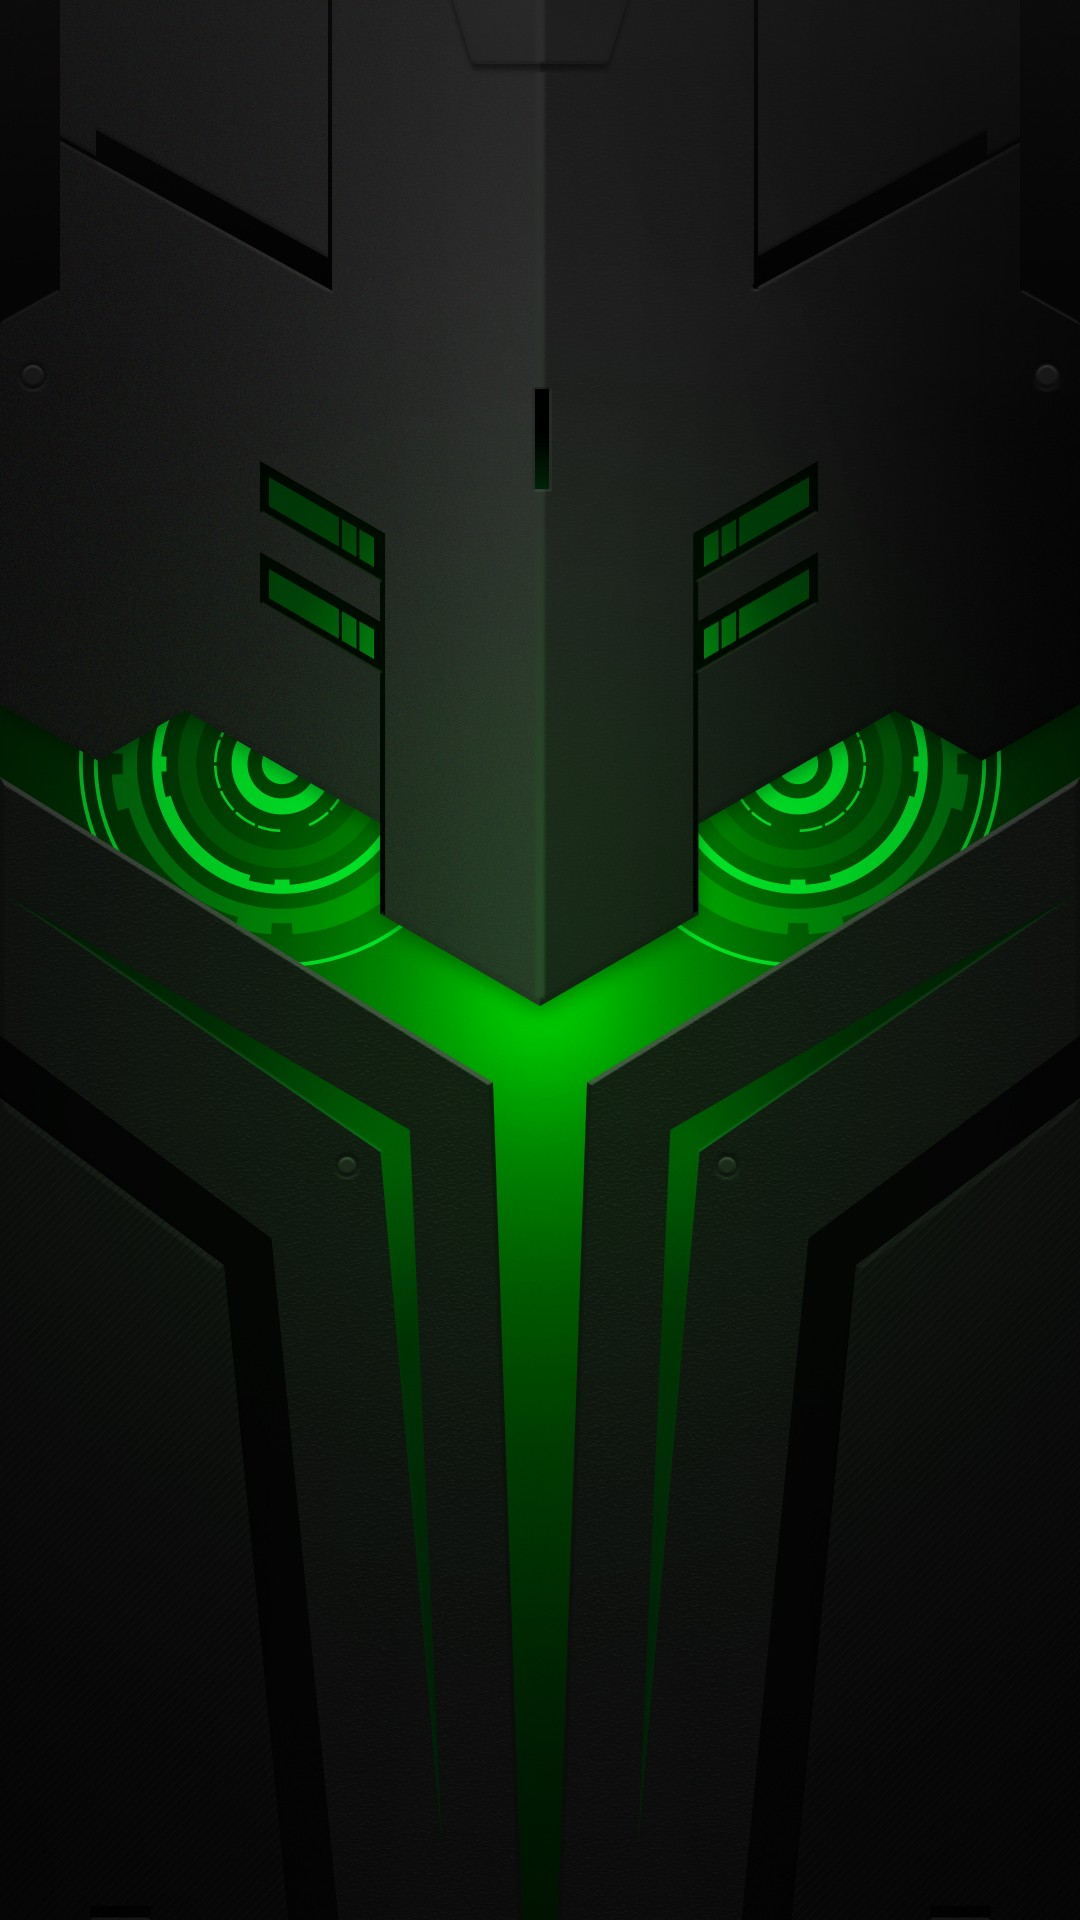 xiaomi black shark helo 1080x1920 abstract android 8 0 hd 20888